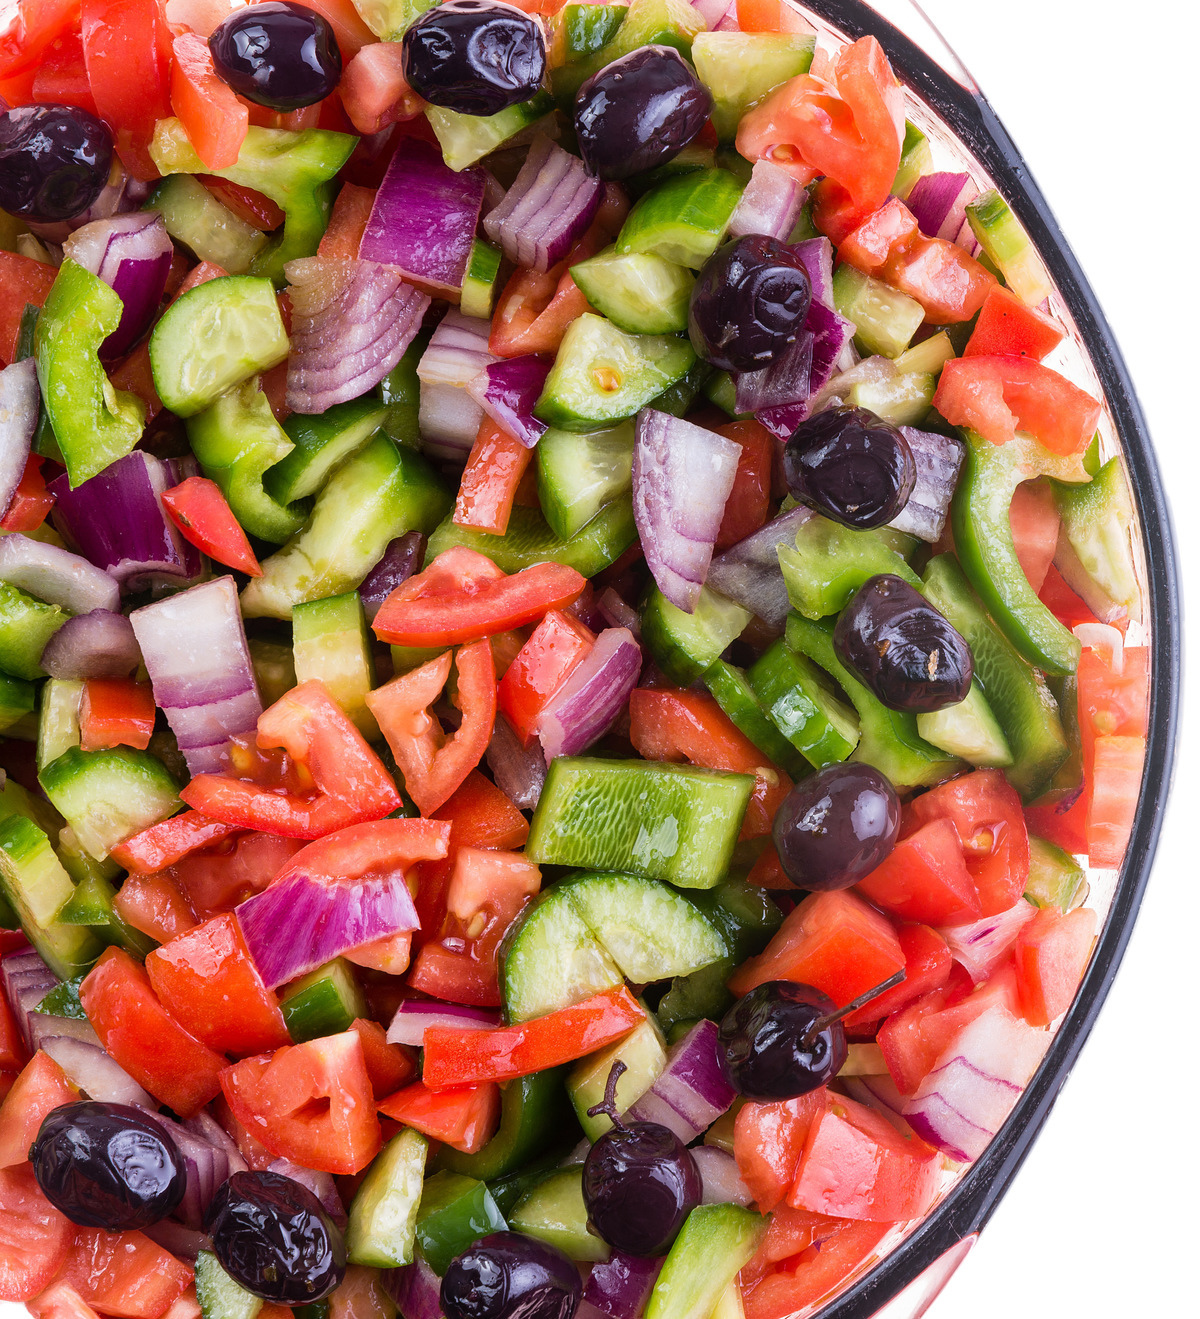 Colorful healthy Turkish shepherd salad with assorted diced fresh vegetables served in a round bowl view close up from overhead over white with copy space on the right